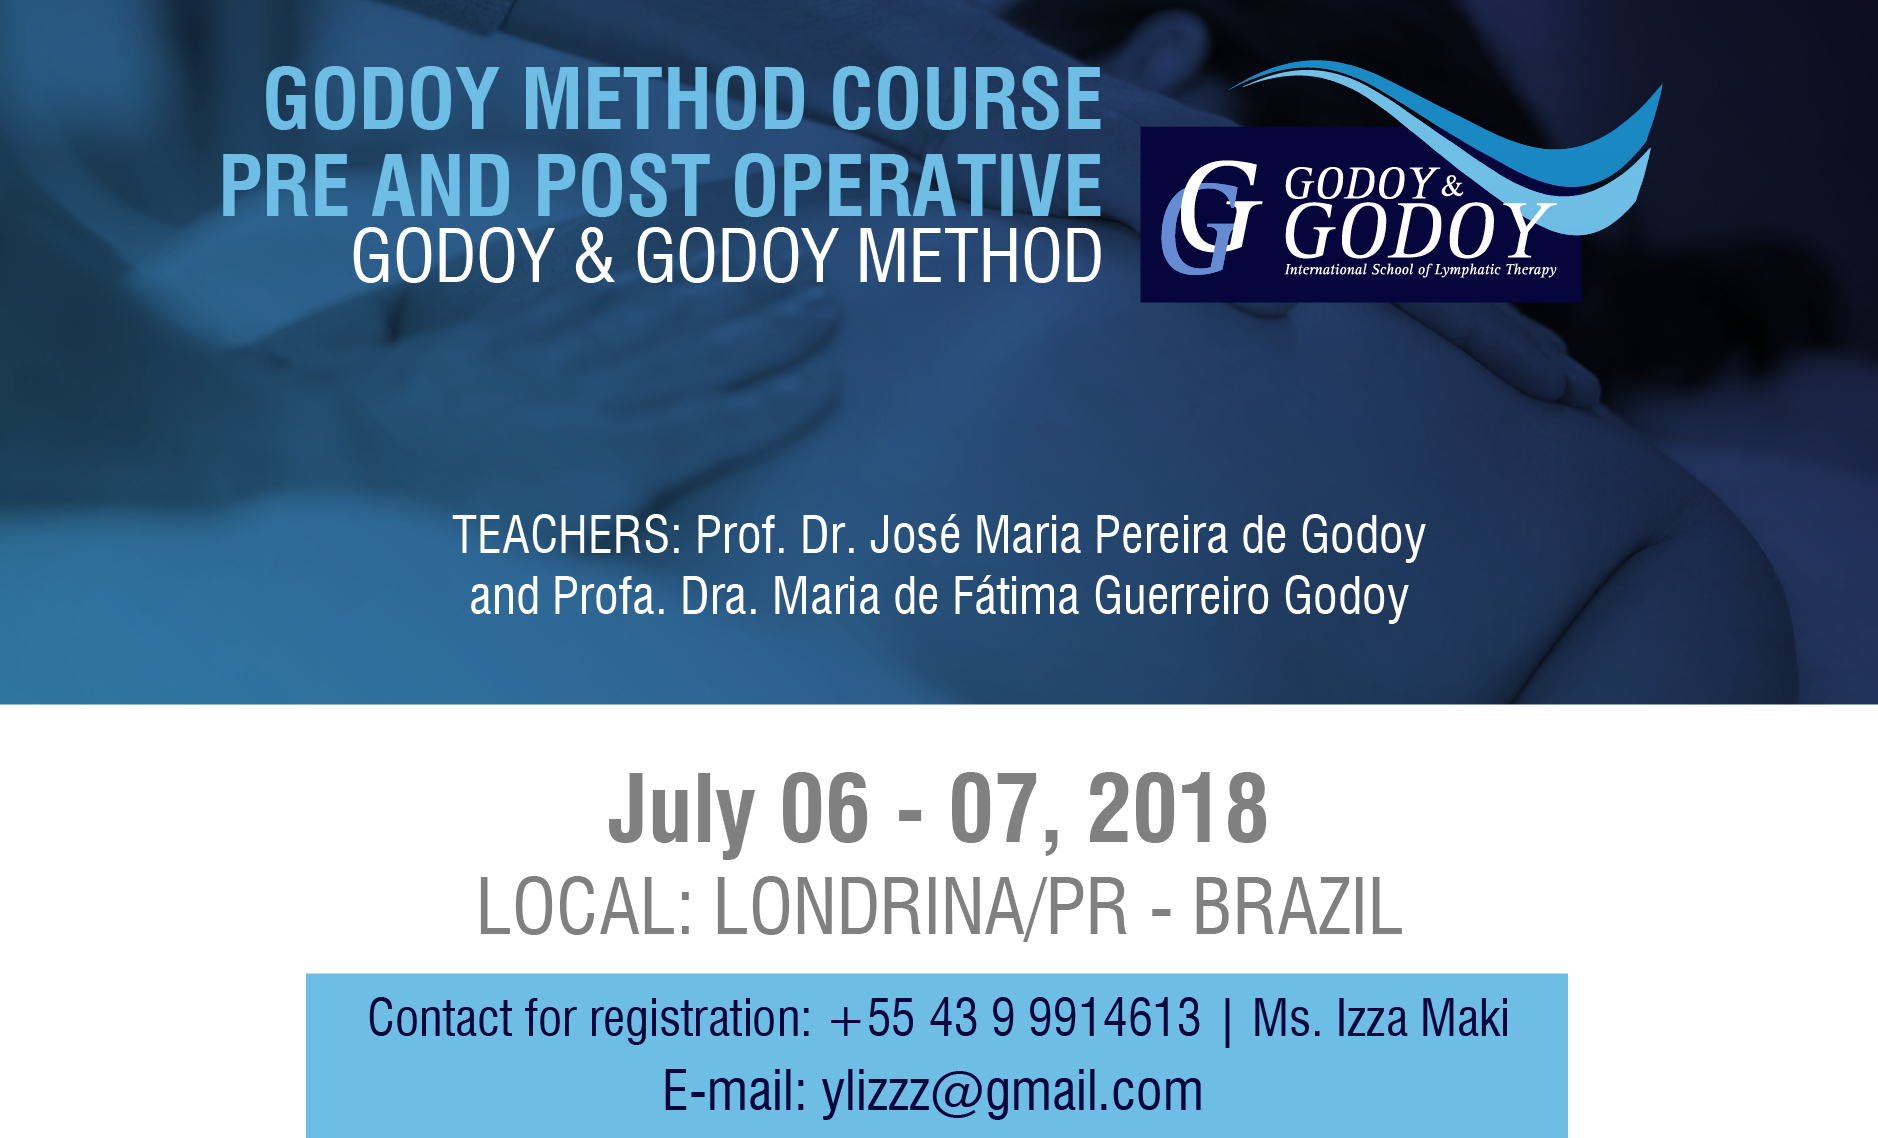 Godoy Method Course PRE AND POST OPERATIVE